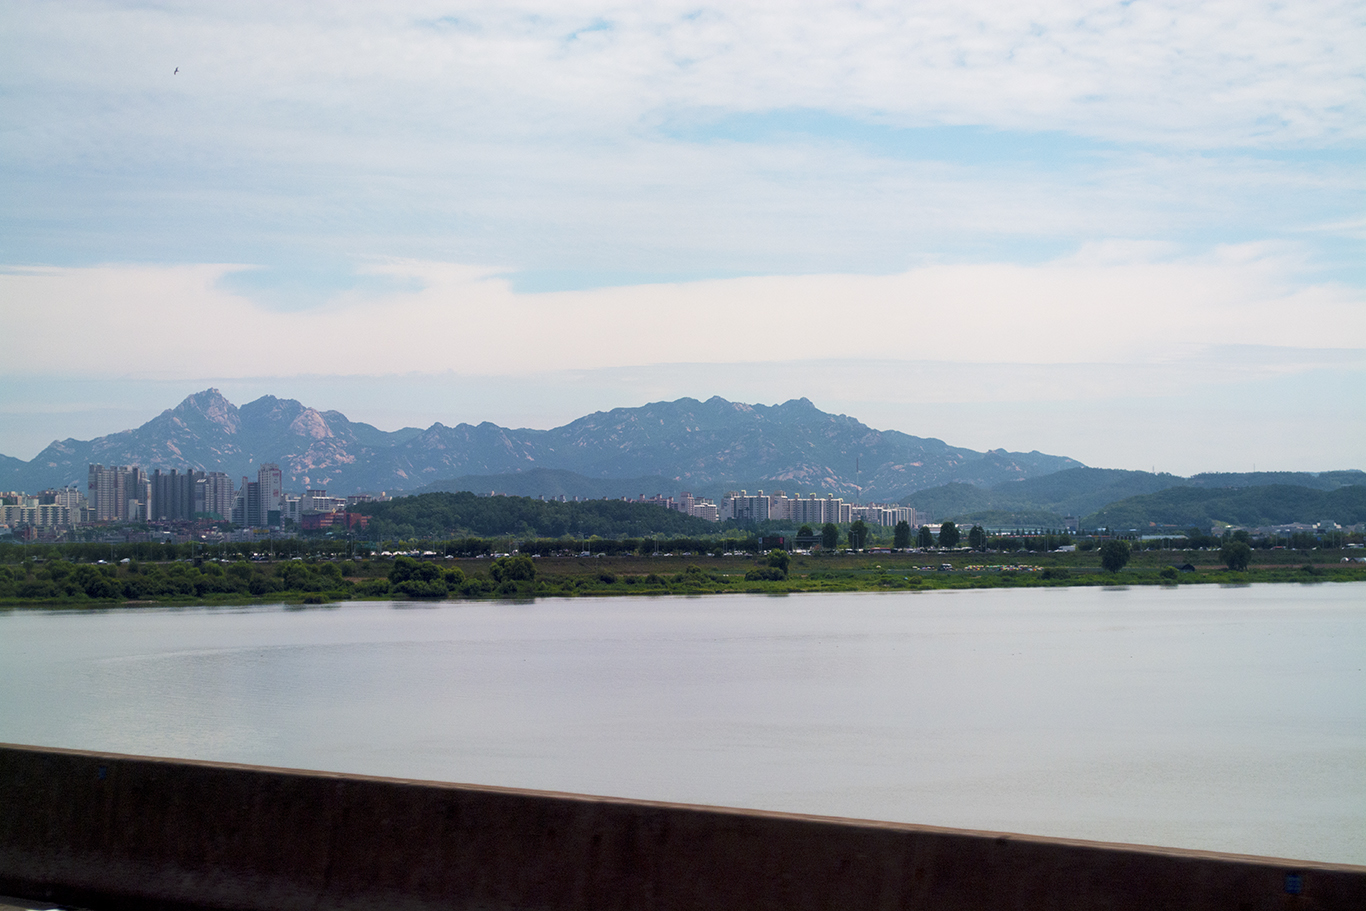 The eastern side of Goyang city, South Korea. The heart of Goyang's western district is only eight miles from the Military Demarcation Line that divides the two Koreas.(CHRISTOPHER CAMERON/THE STATESMAN)